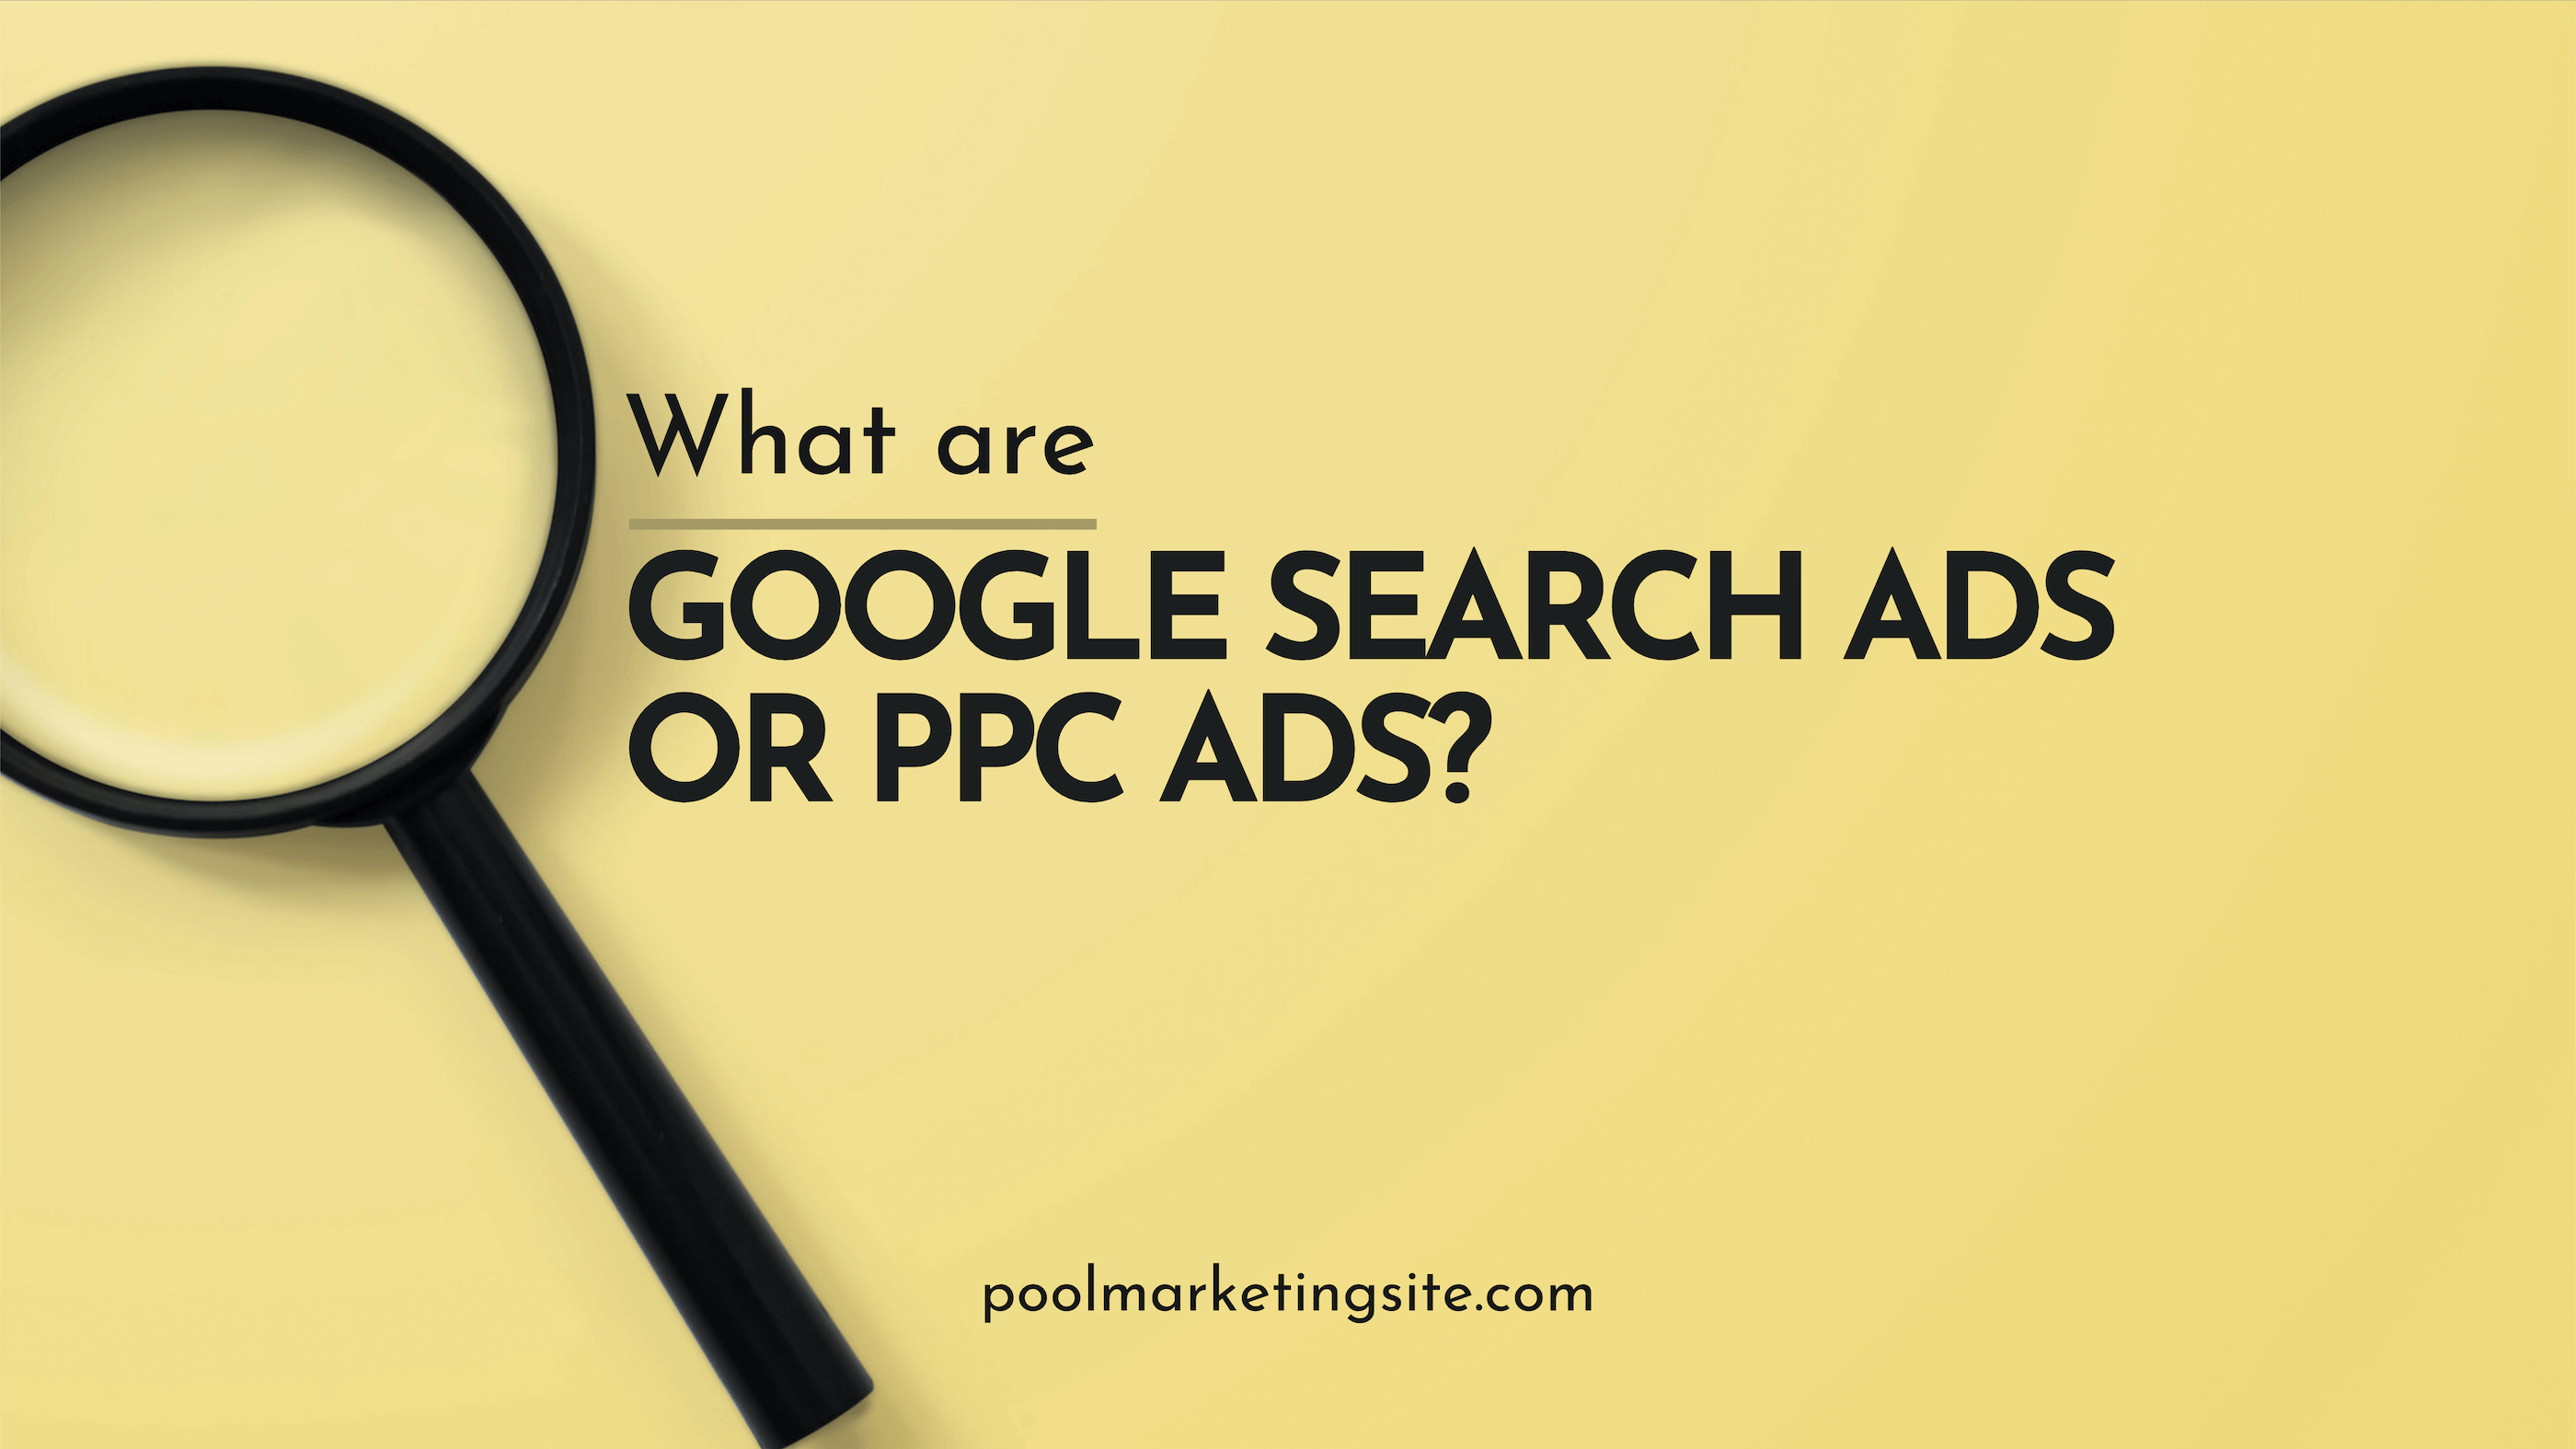 What Are Google Search Ads or PPC Ads?